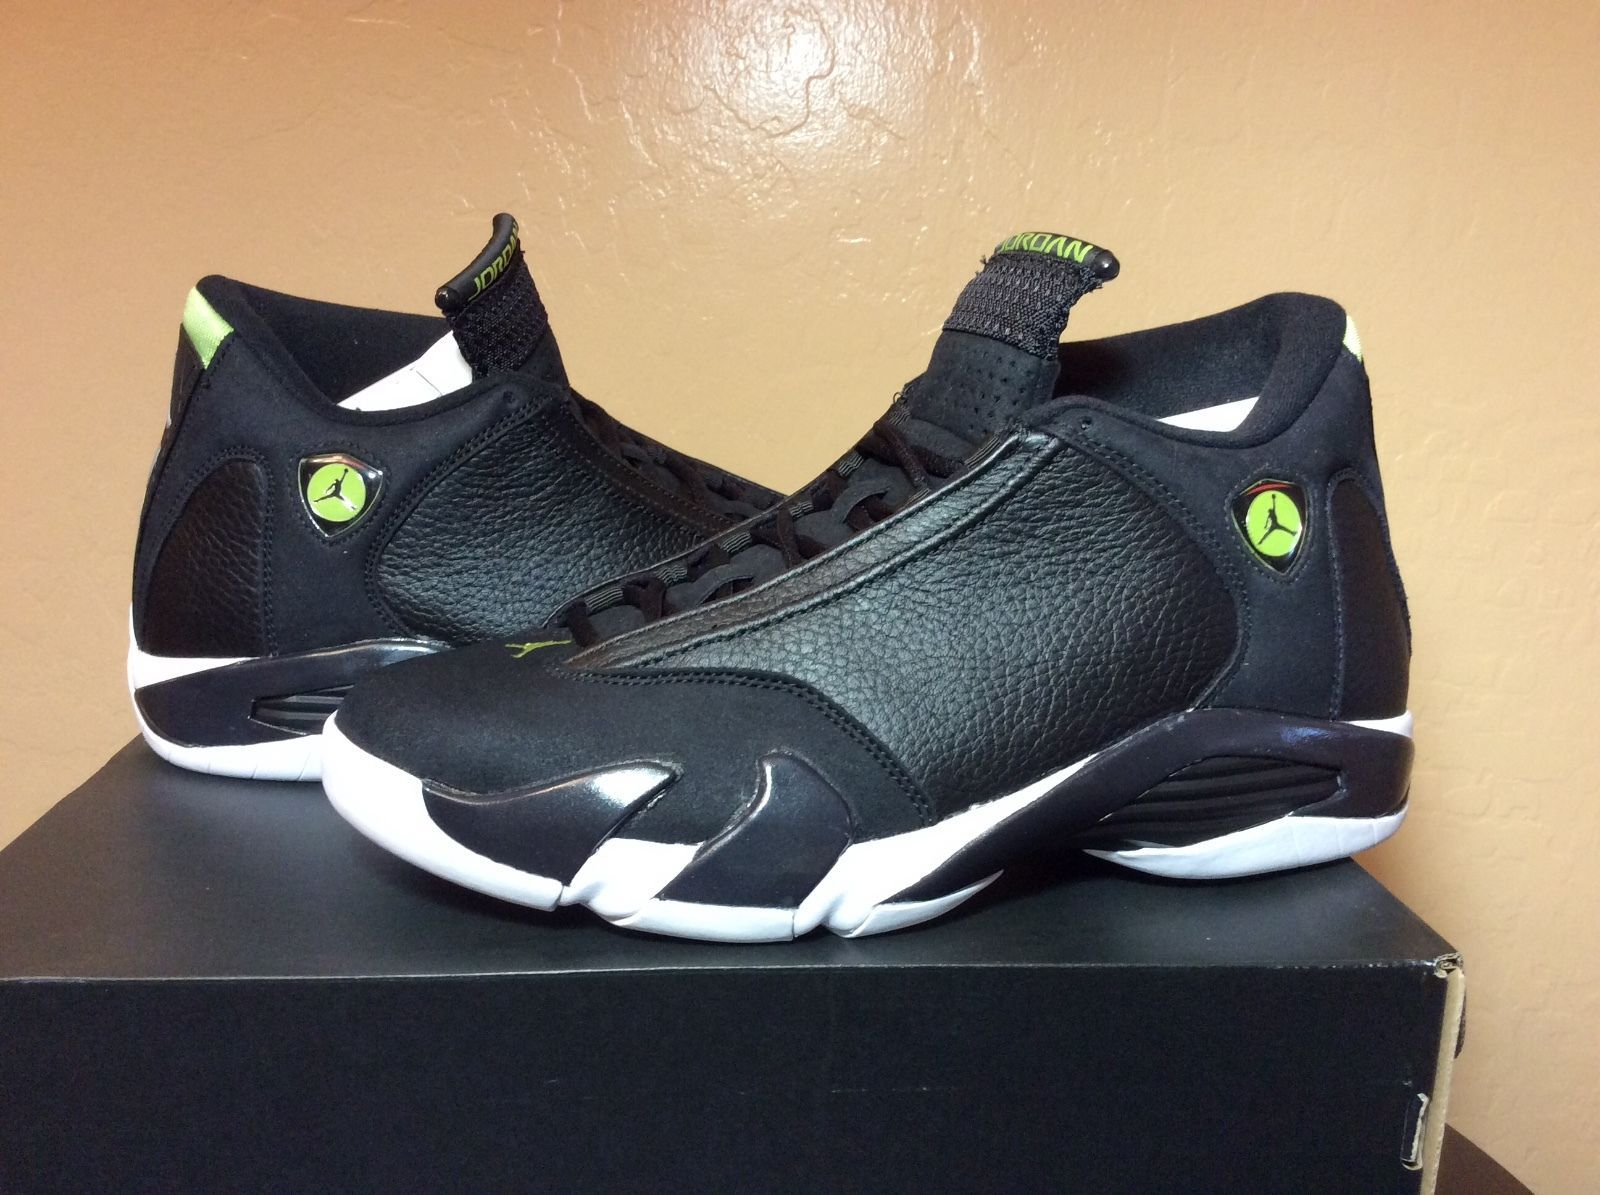 DS Air Jordan Retro 14 Indiglo XIV lot royal shadow bred fragment SBB